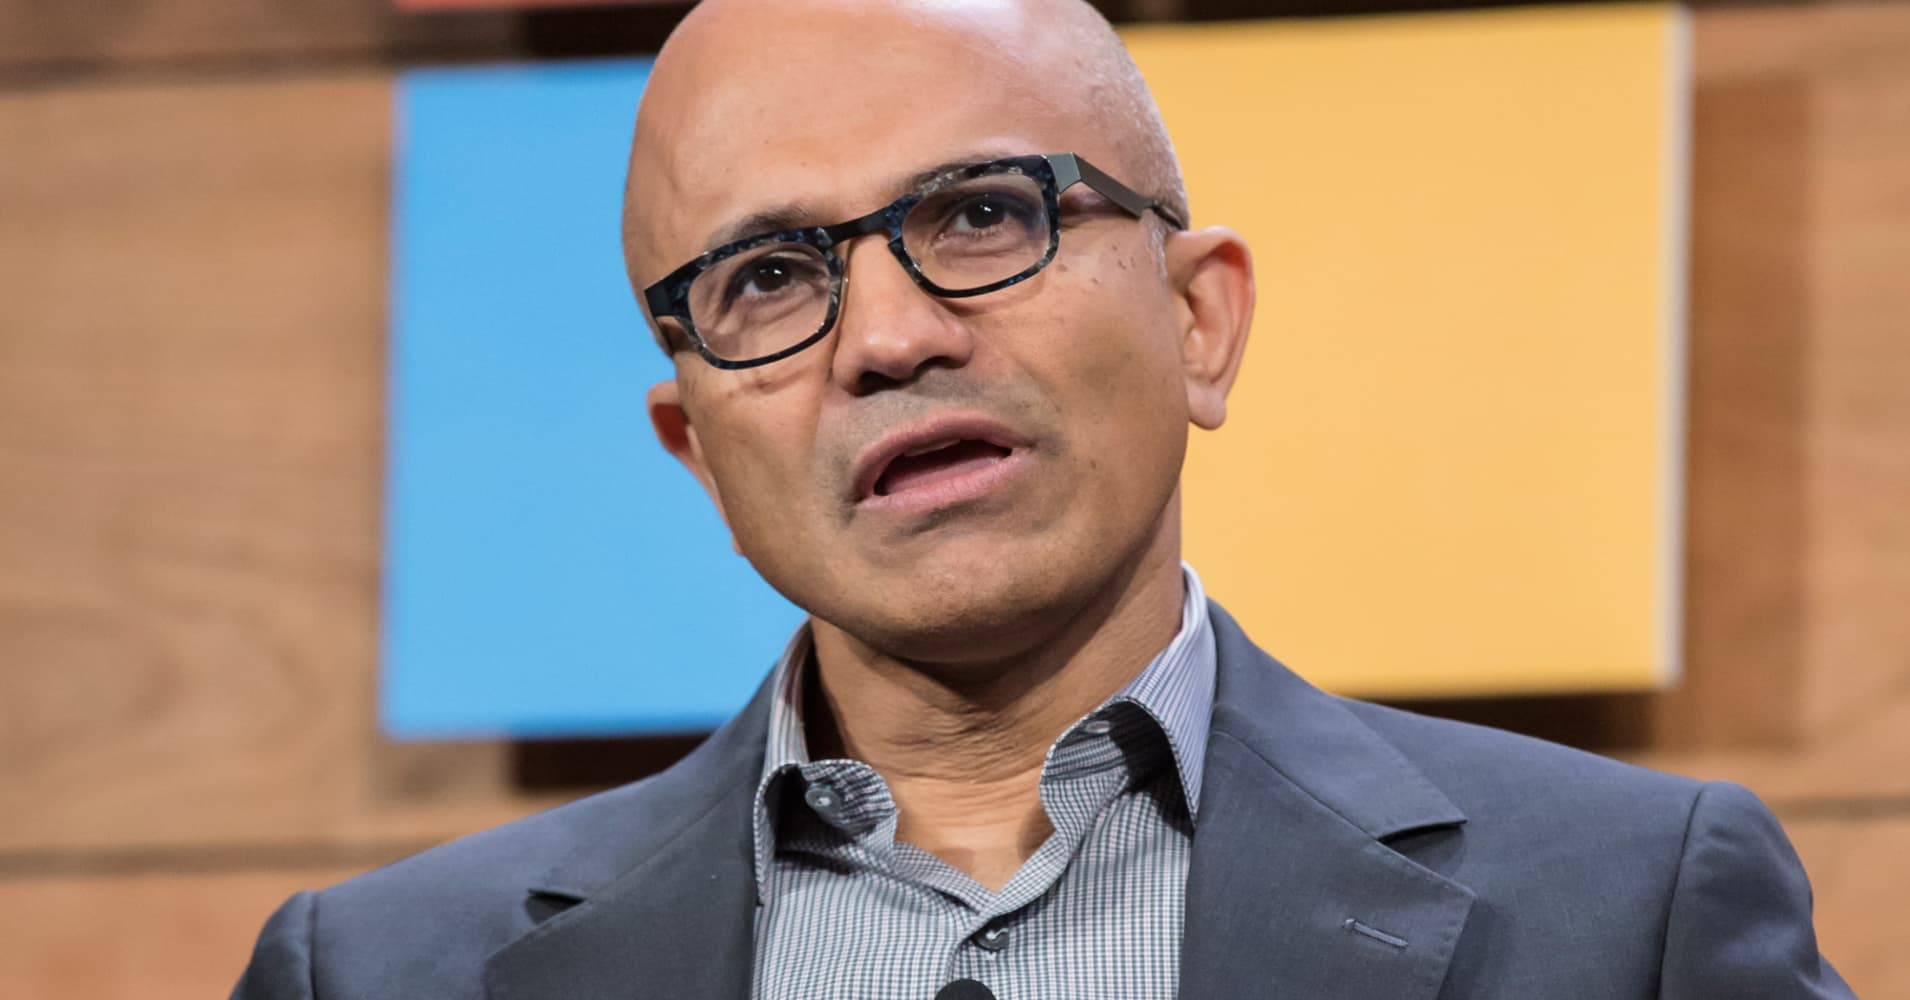 Microsoft says it added detection, protection against global cyberattack